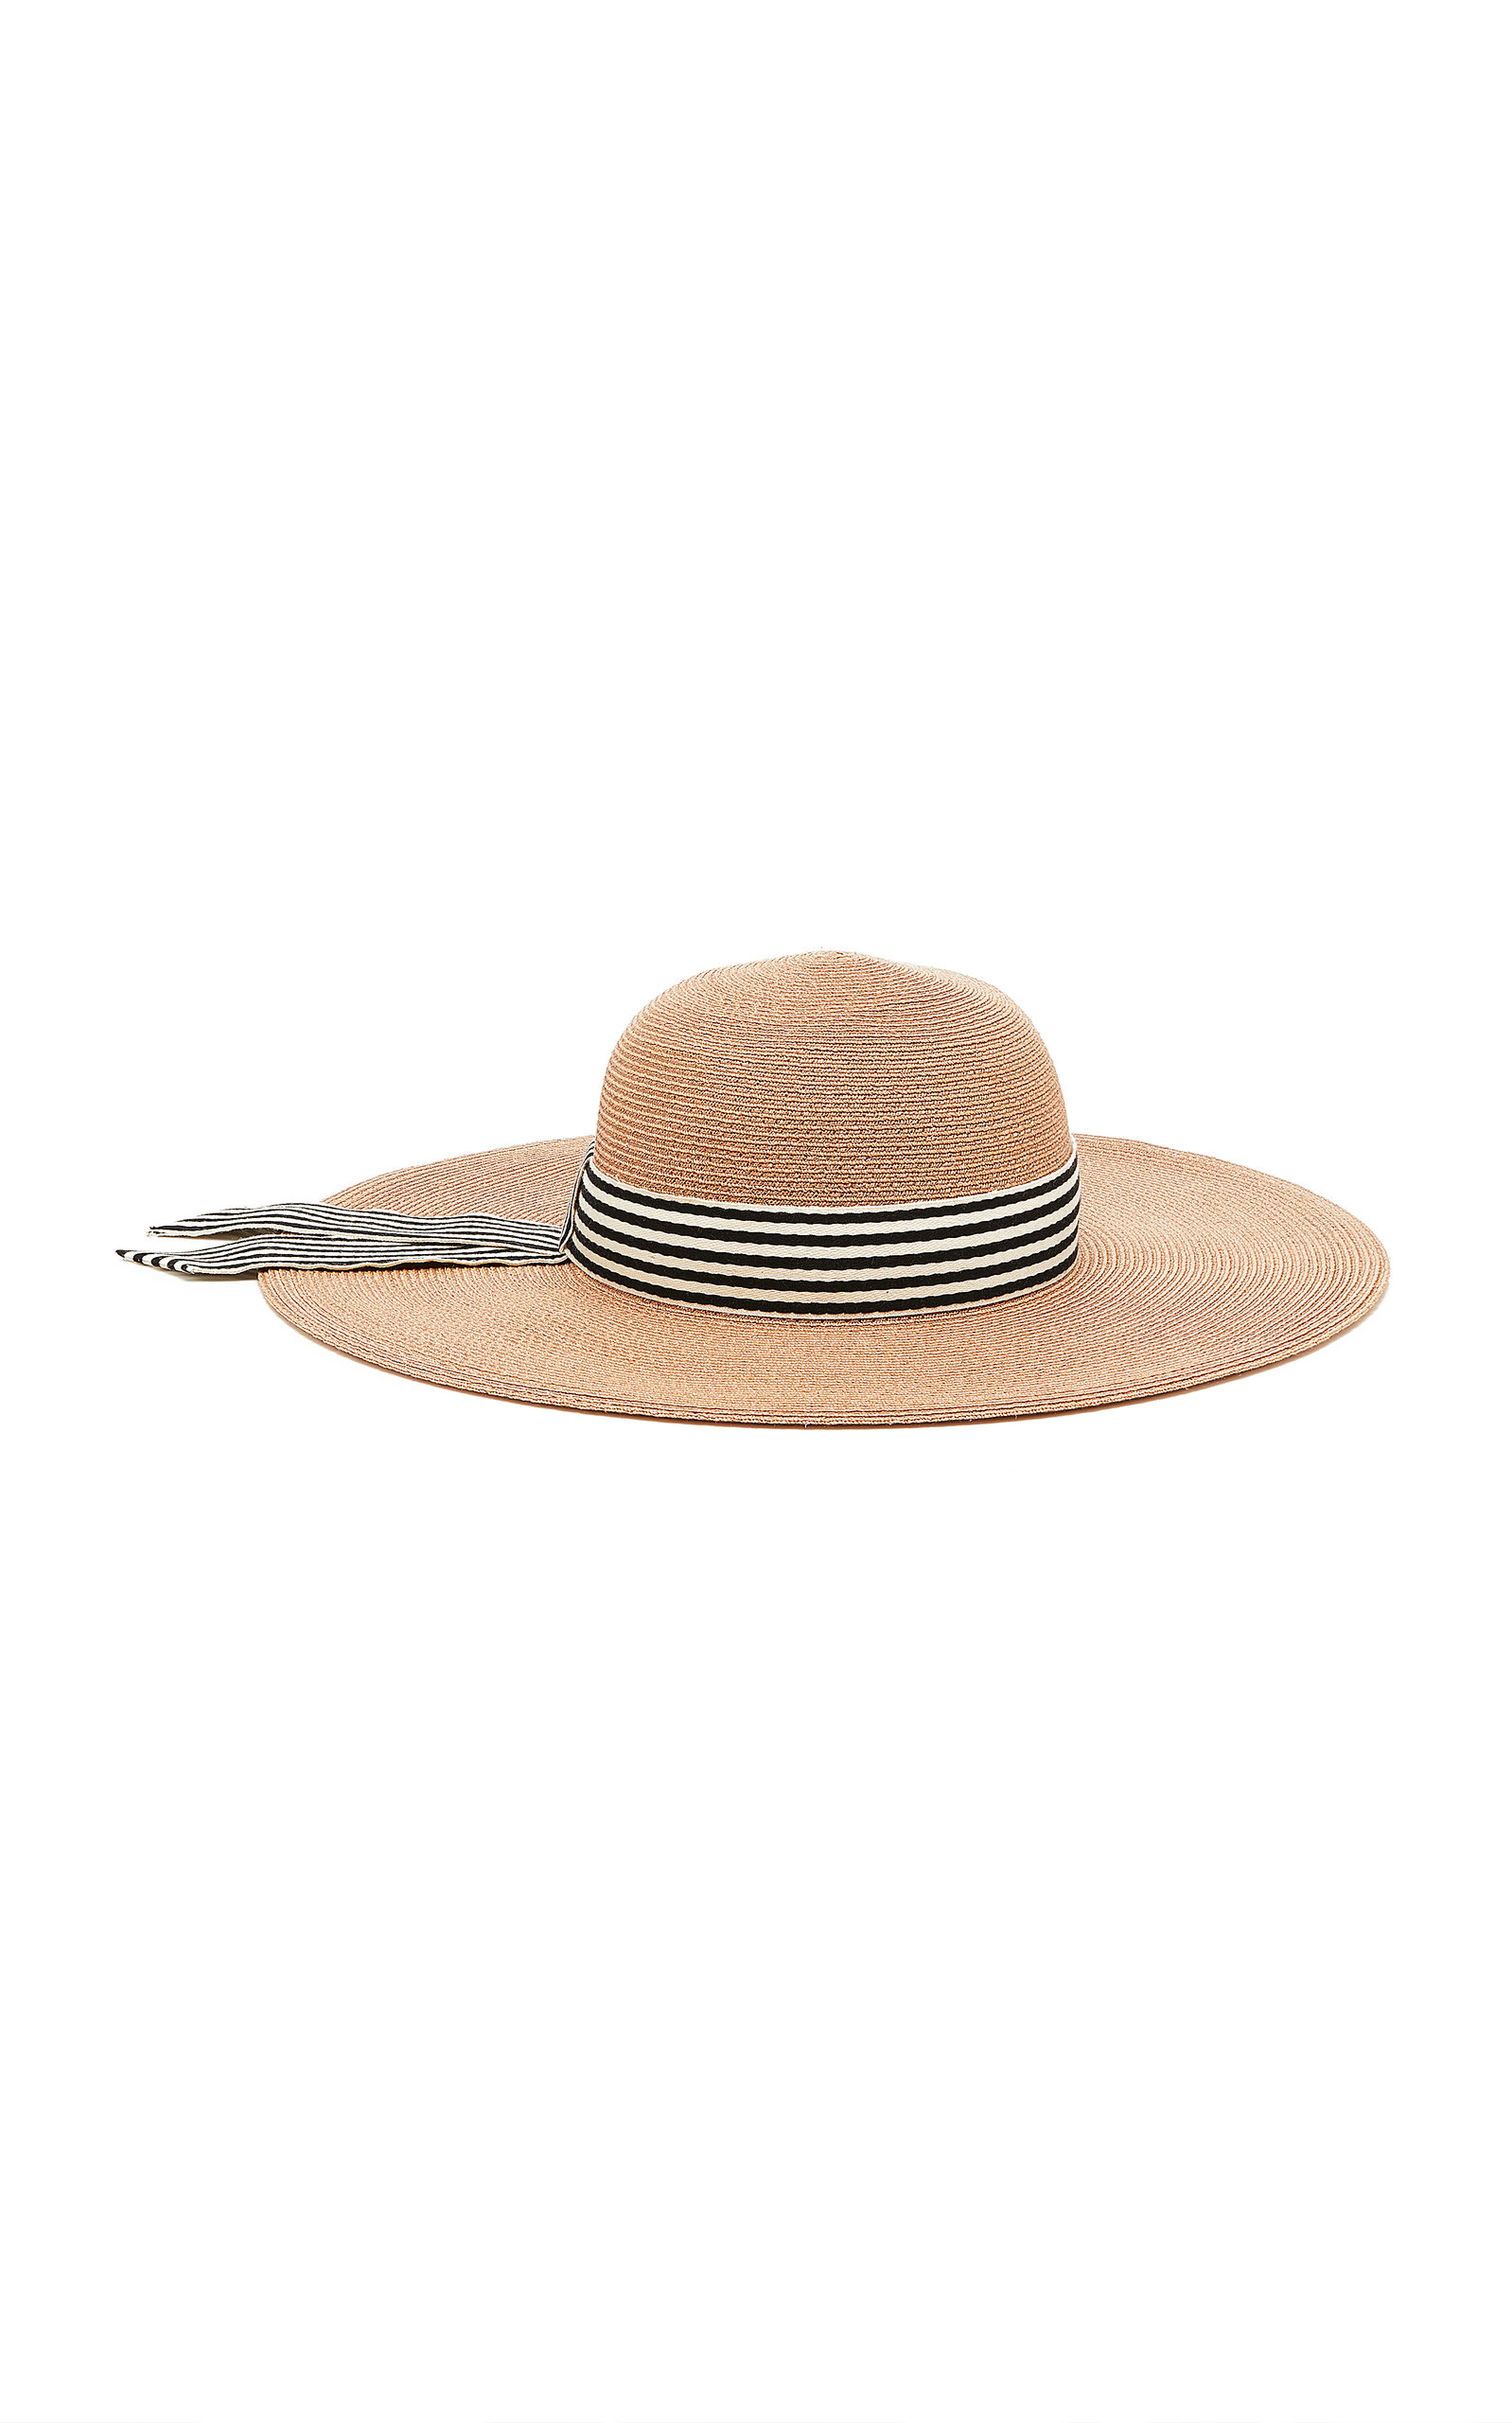 a80bc57a87338 Eugenia KimHoney Hat. CLOSE. Loading. Eugenia Kim Annabelle Grosgrain-trimmed  Straw ...